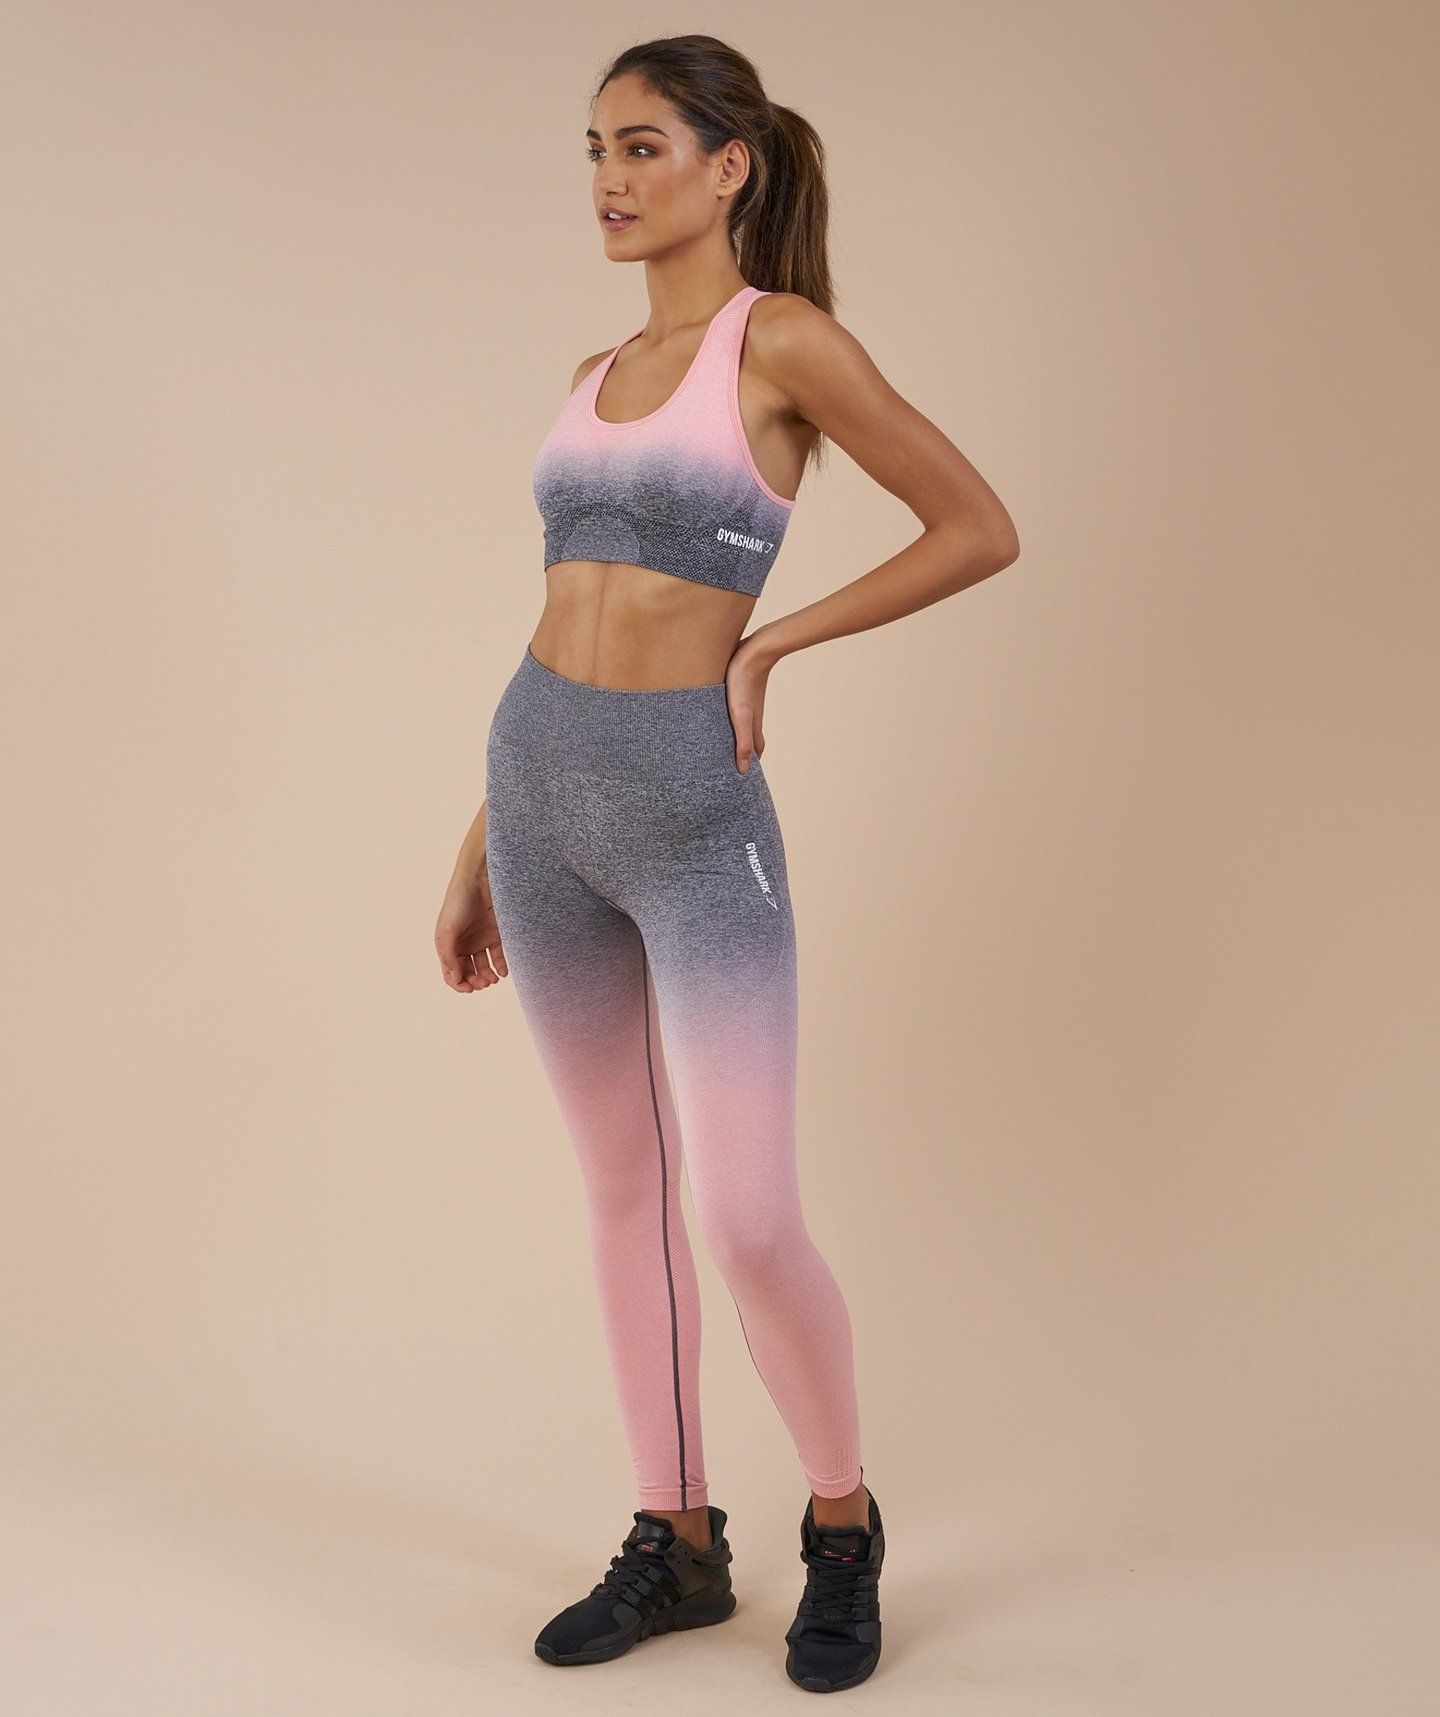 64940b3bae75d Gymshark Ombre Seamless Leggings - Peach Pink/Charcoal 2 | Pay Day ...